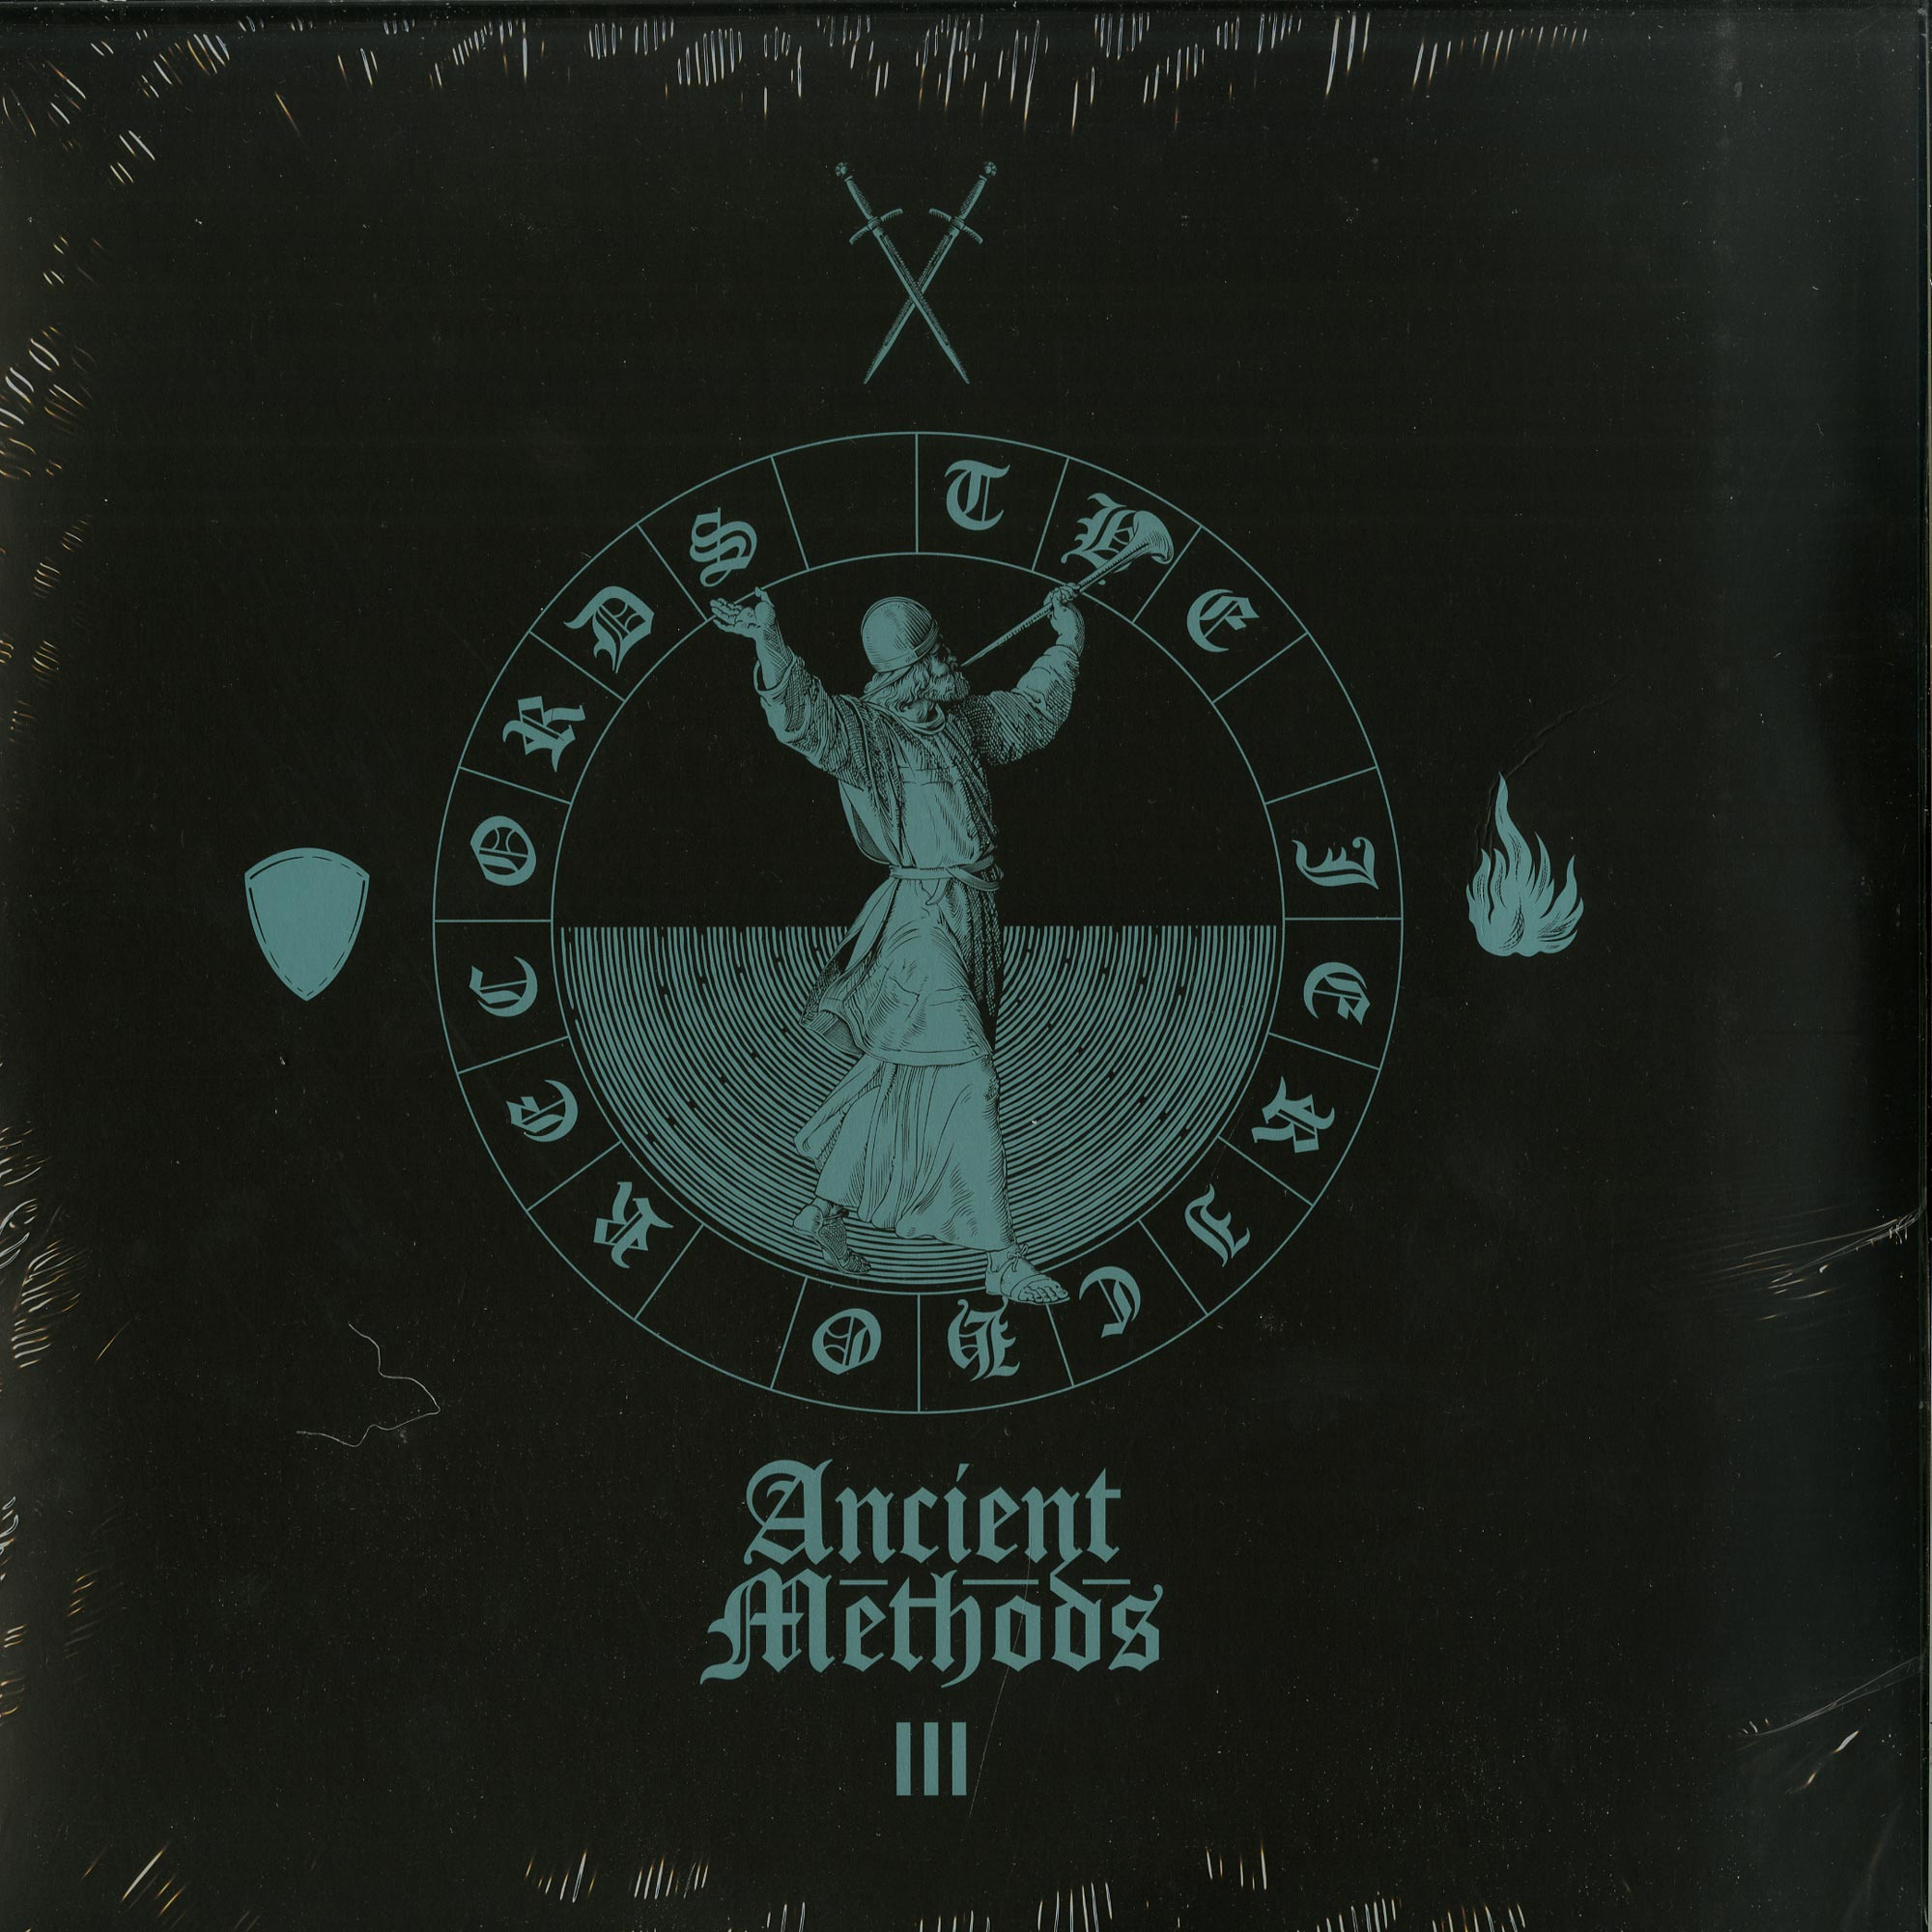 Ancient Methods - The Jericho Records